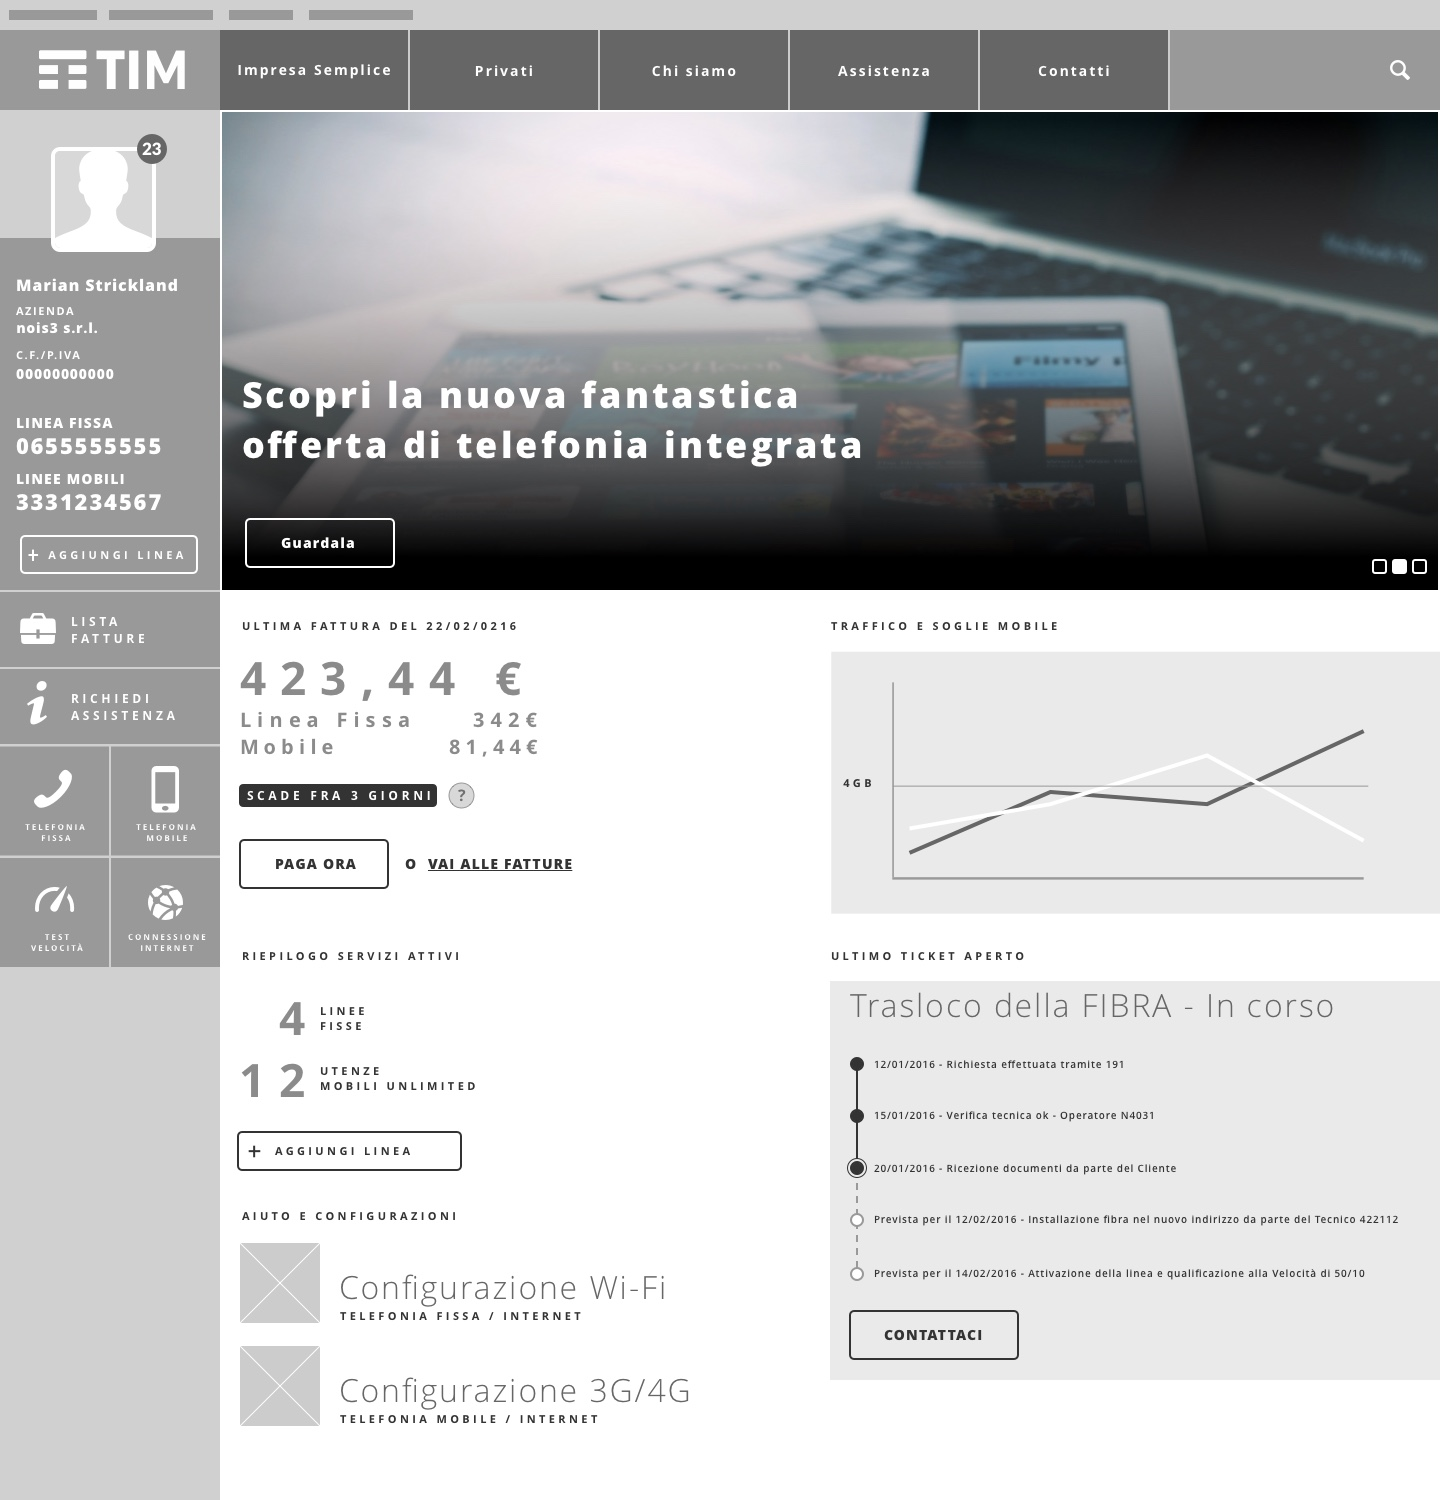 TIM IMPRESA SEMPLICE UX, DESALL, TIM IS, Data Driven UX case study, Carlo Frinolli,